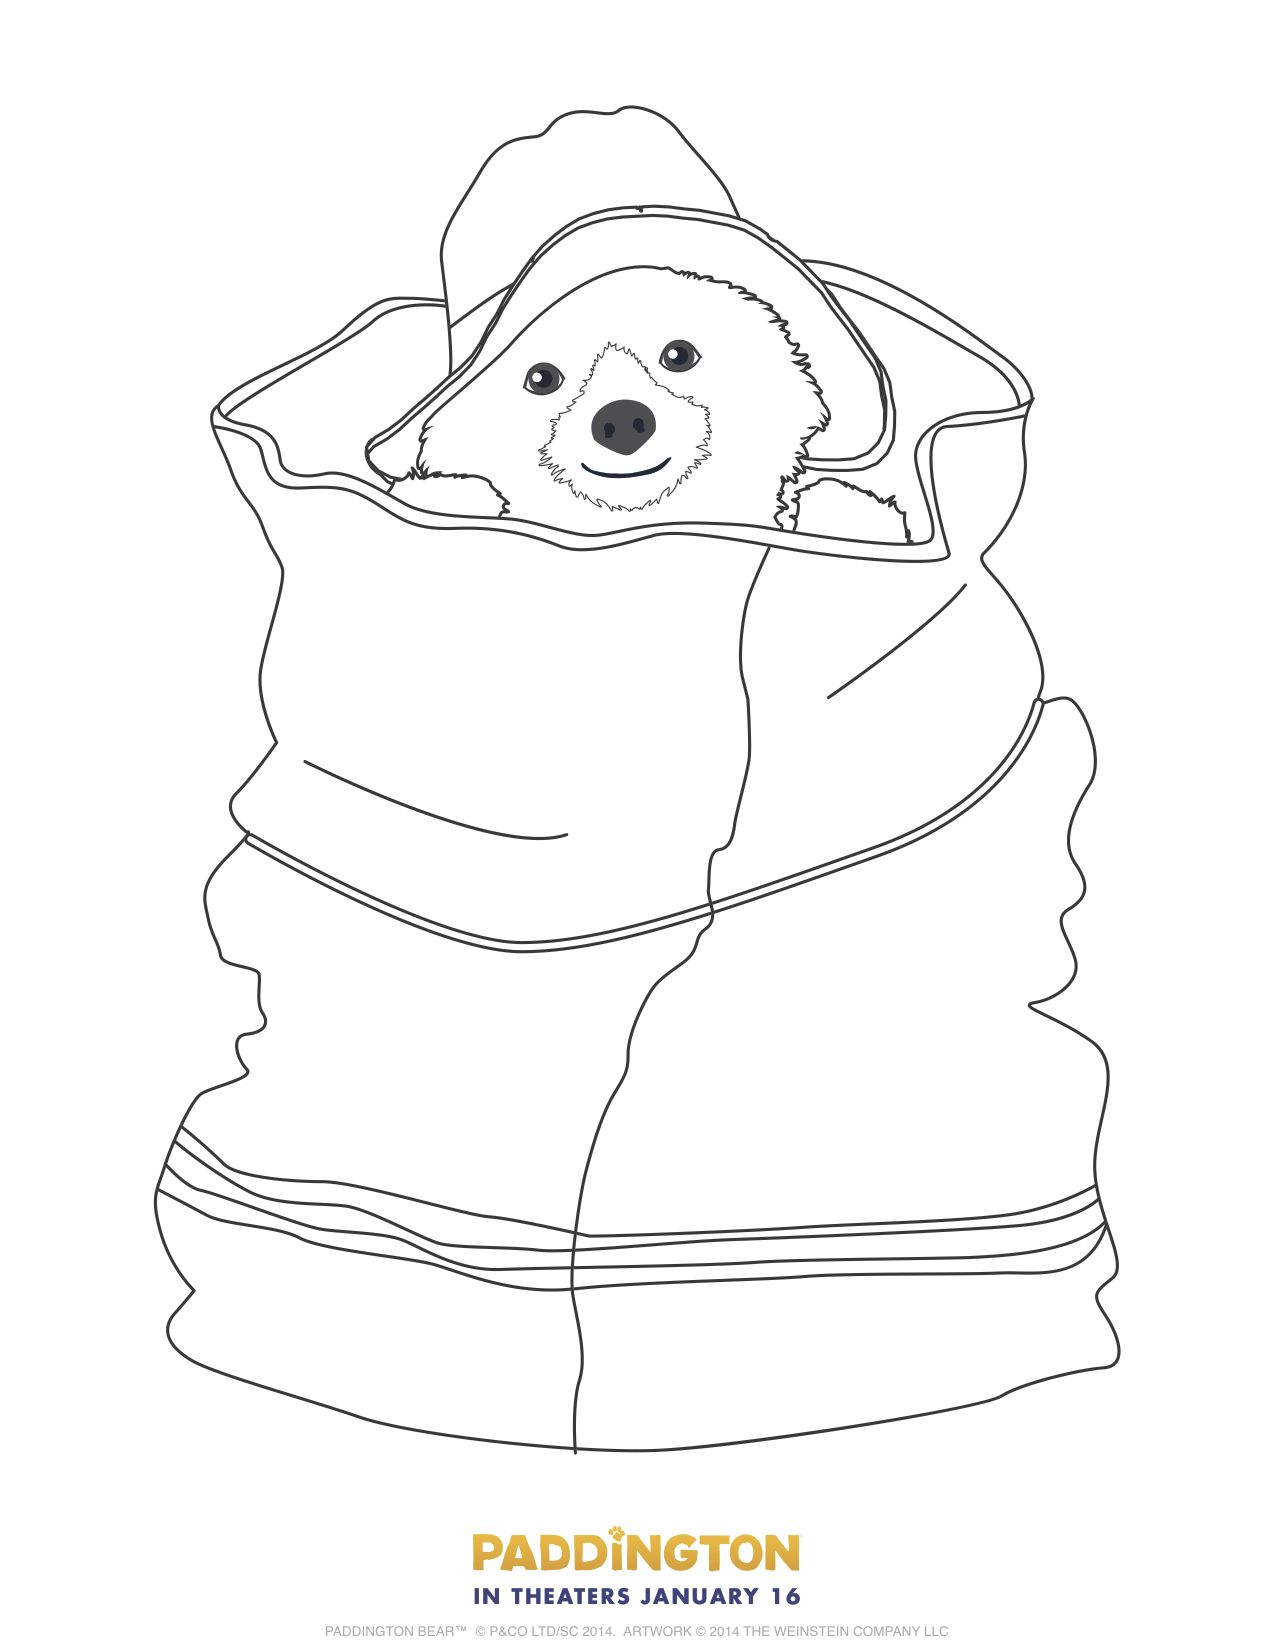 Paddington Bear Coloring Page Free Printable | coloring pages ...